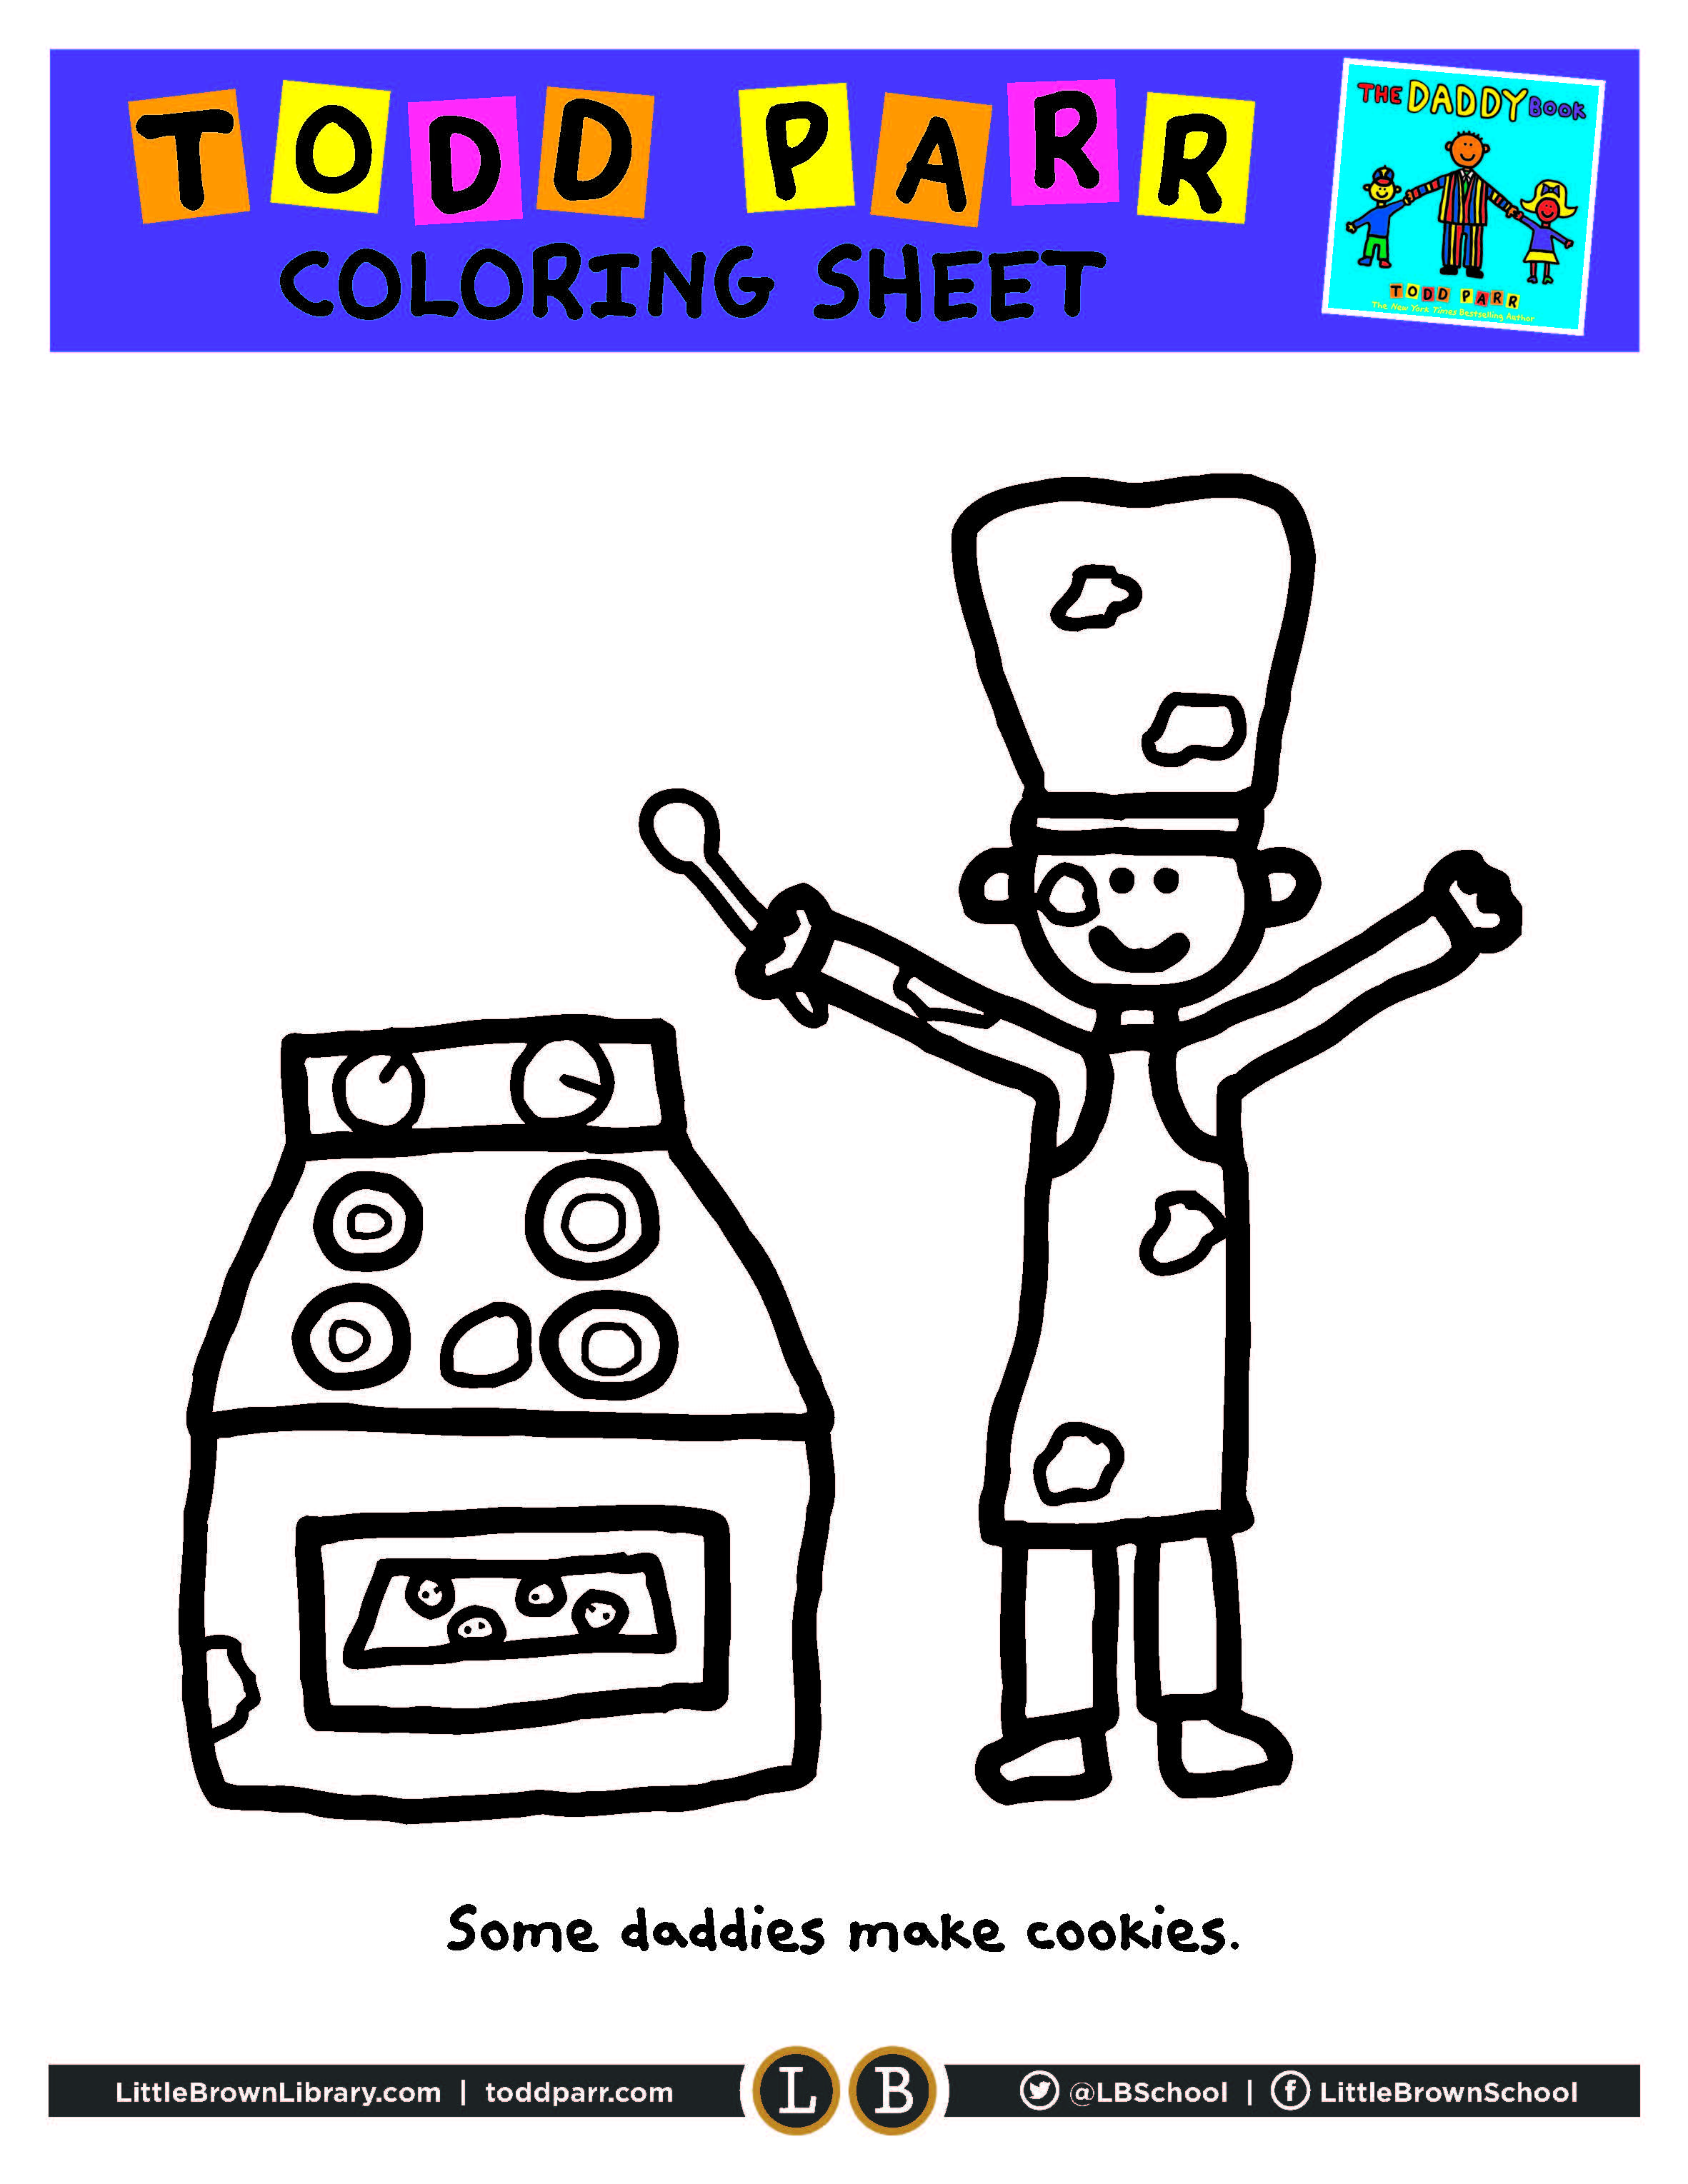 Todd Parr Coloring Page